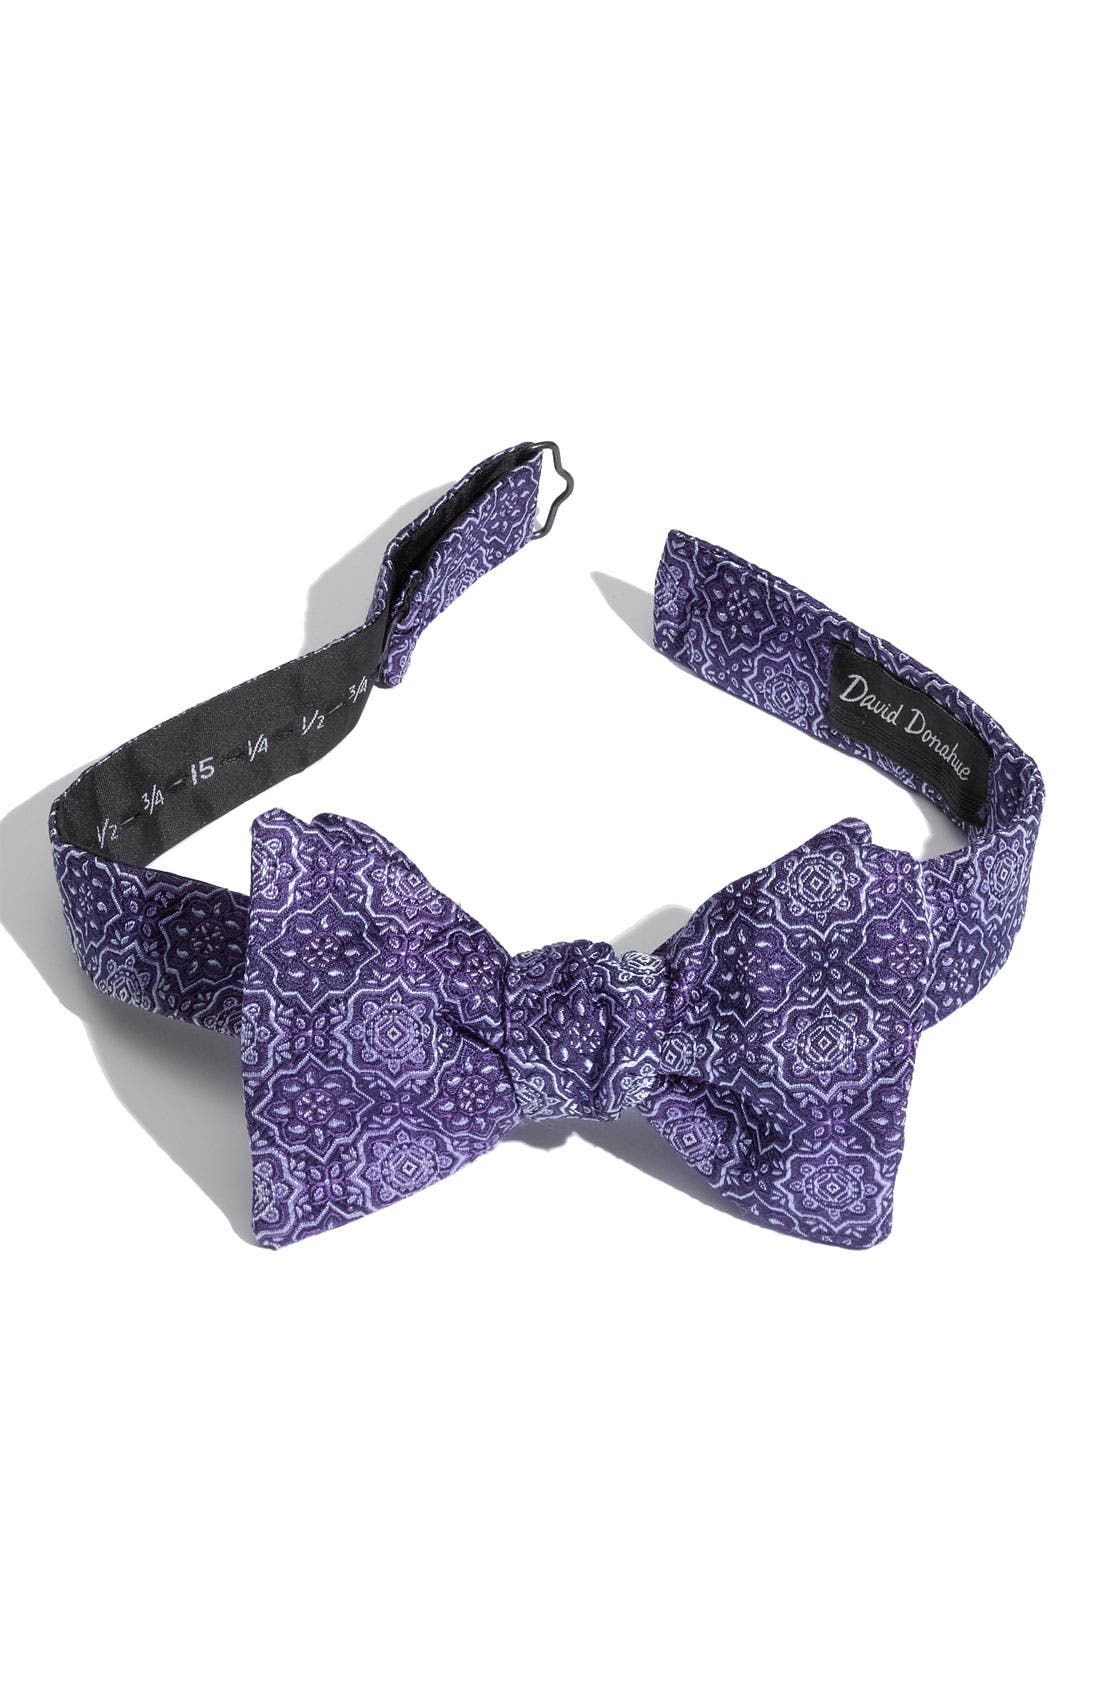 Alternate Image 1 Selected - David Donahue Bow Tie